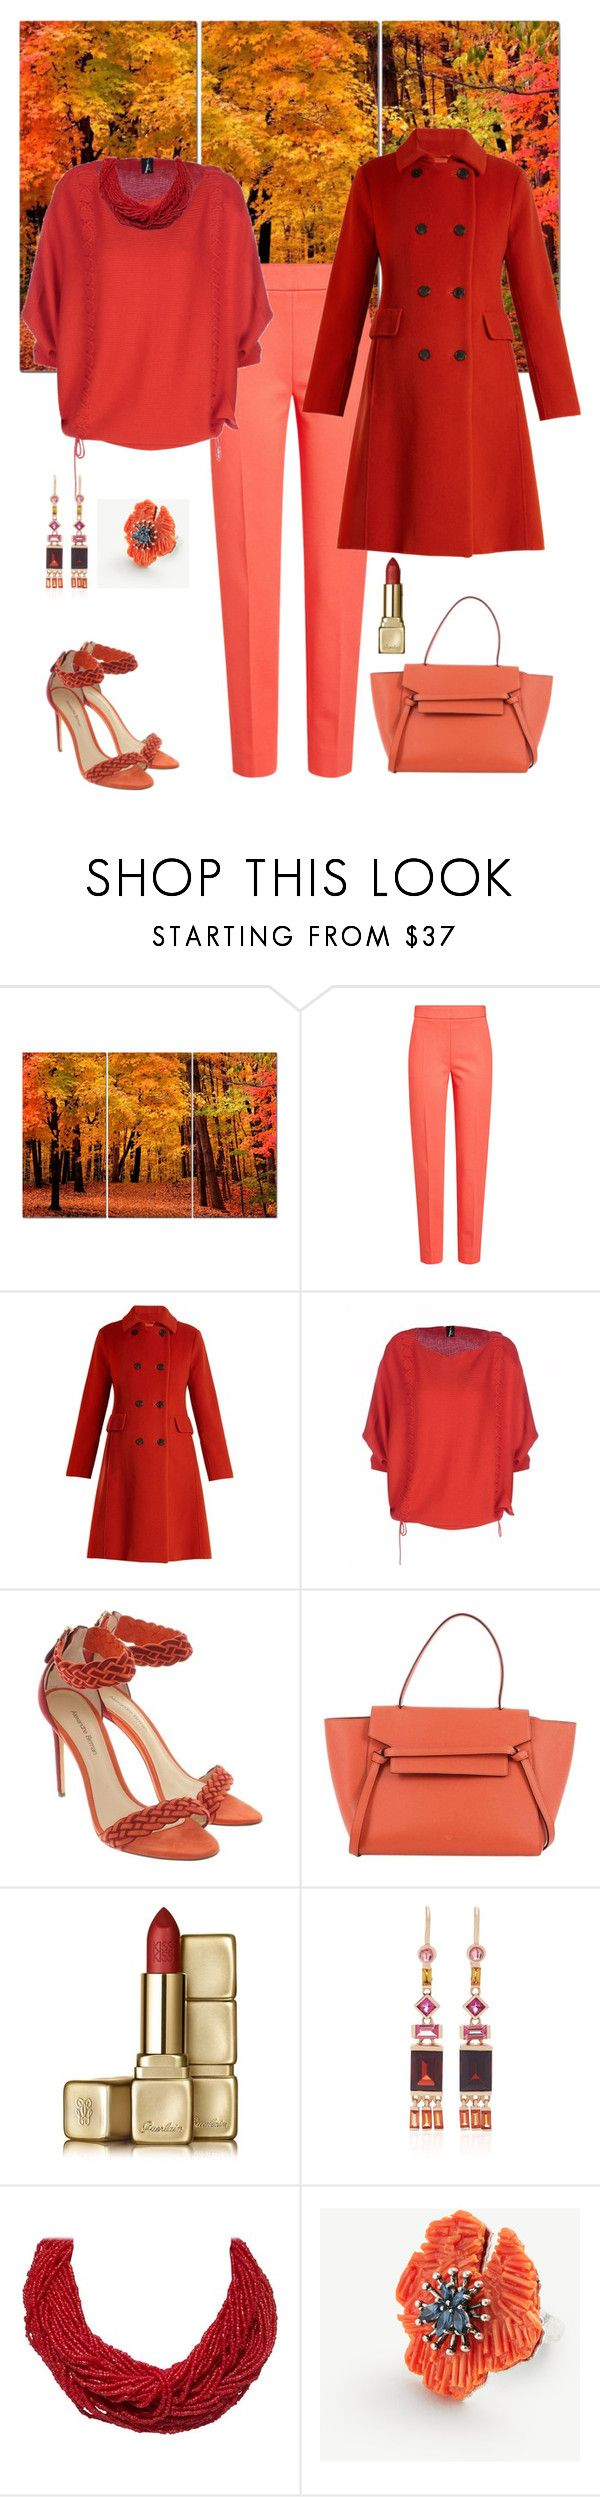 """Fall Desire🍂🍁"" by parnett ❤ liked on Polyvore featuring MaxMara, Weekend Max Mara, CÉLINE, Guerlain, Jane Taylor and Ann Taylor"